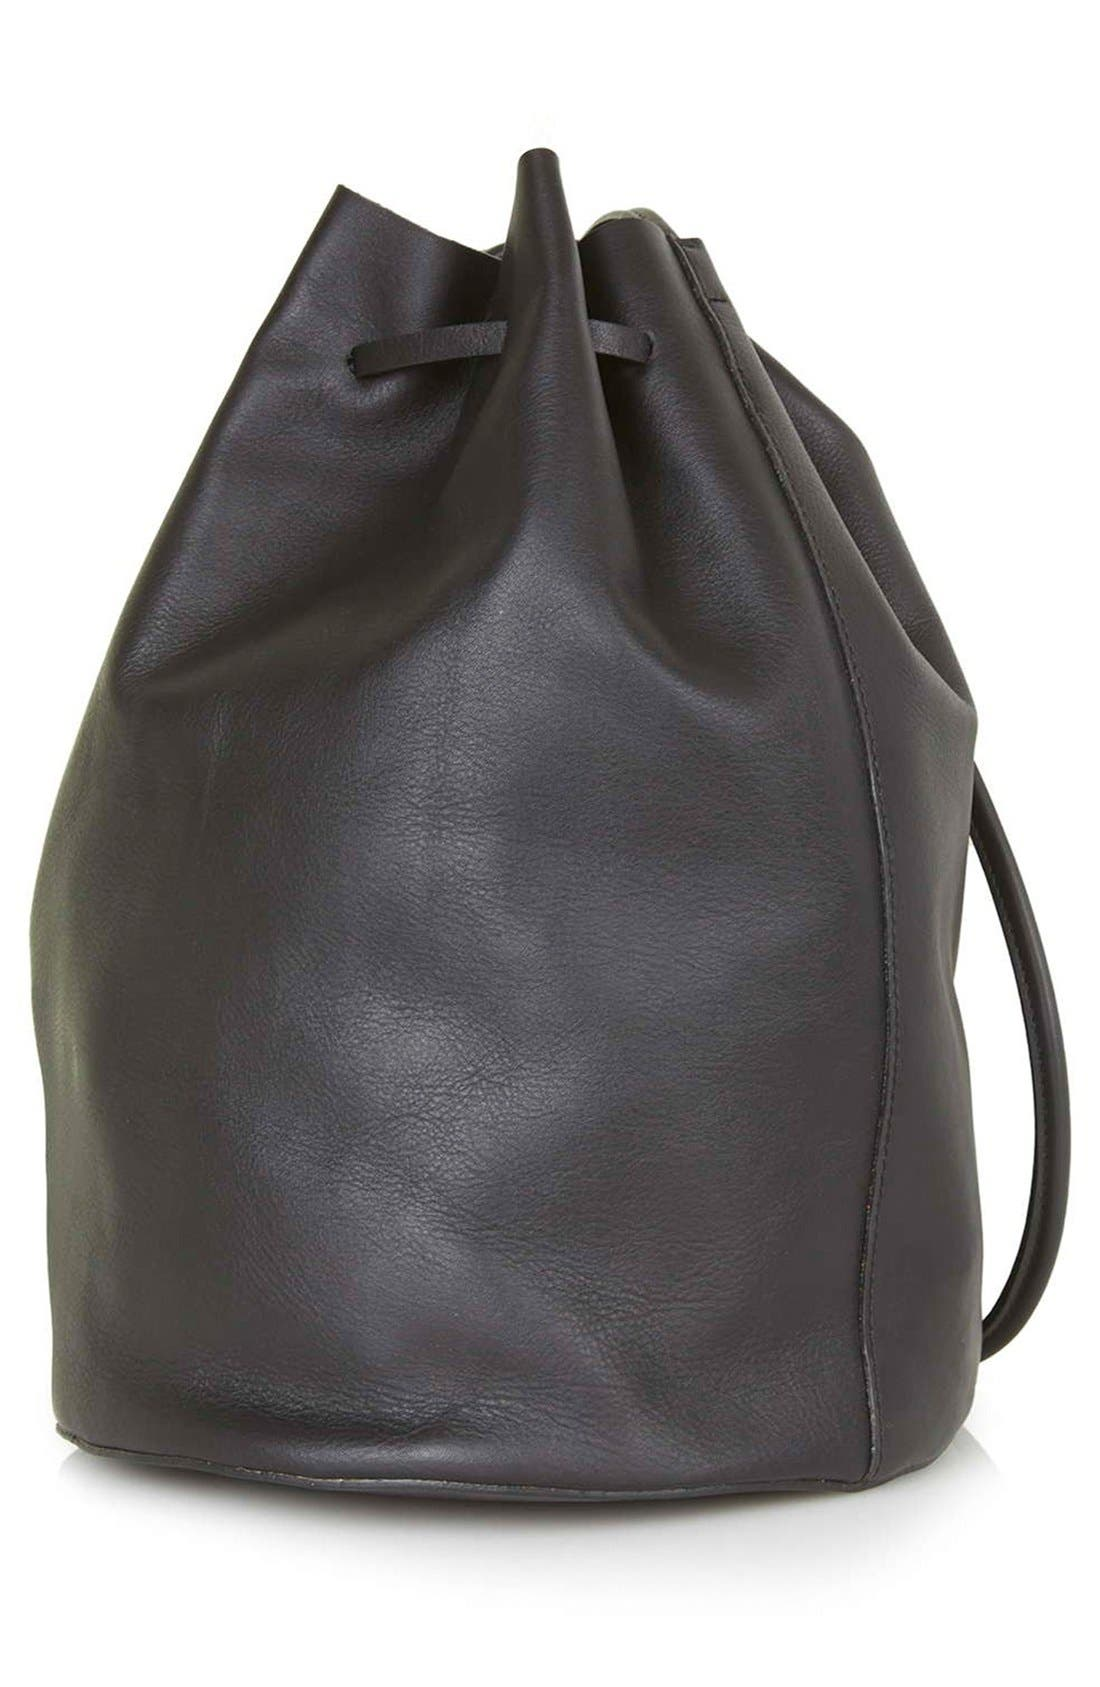 Main Image - Topshop 'Pisces' Leather Bucket Bag